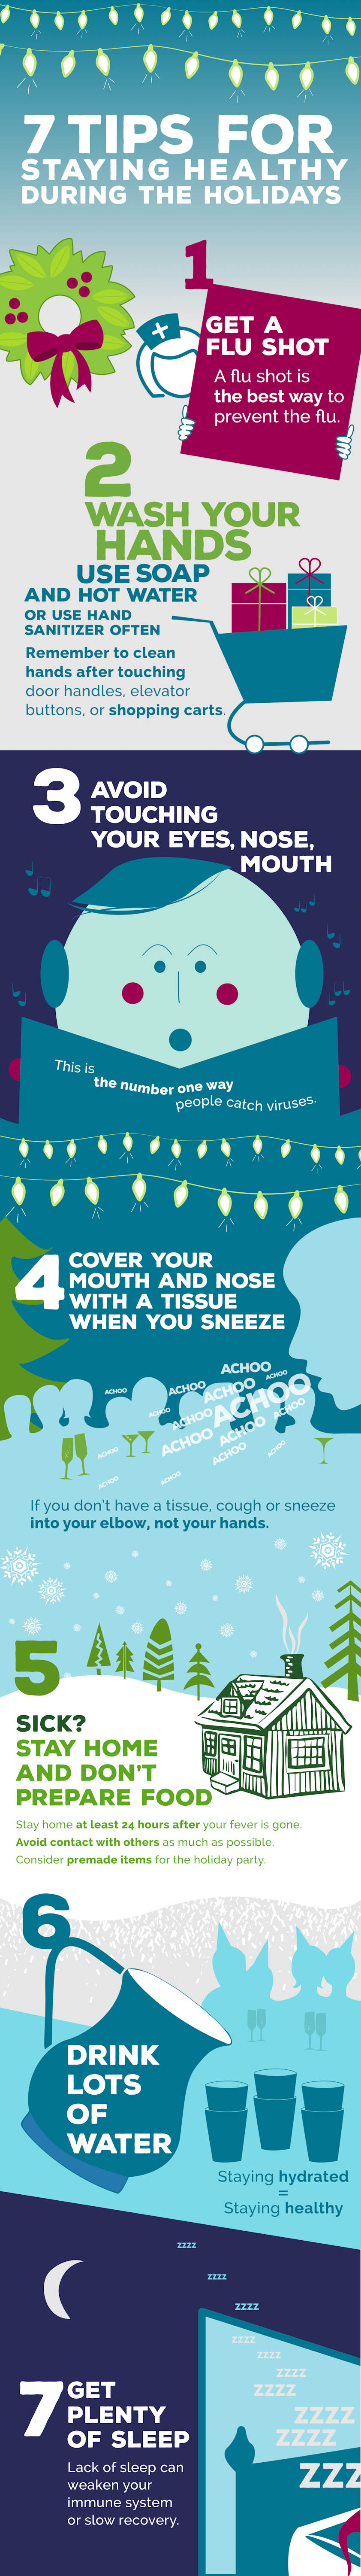 7 Tips for Staying Healthy During the Holidays Infographic